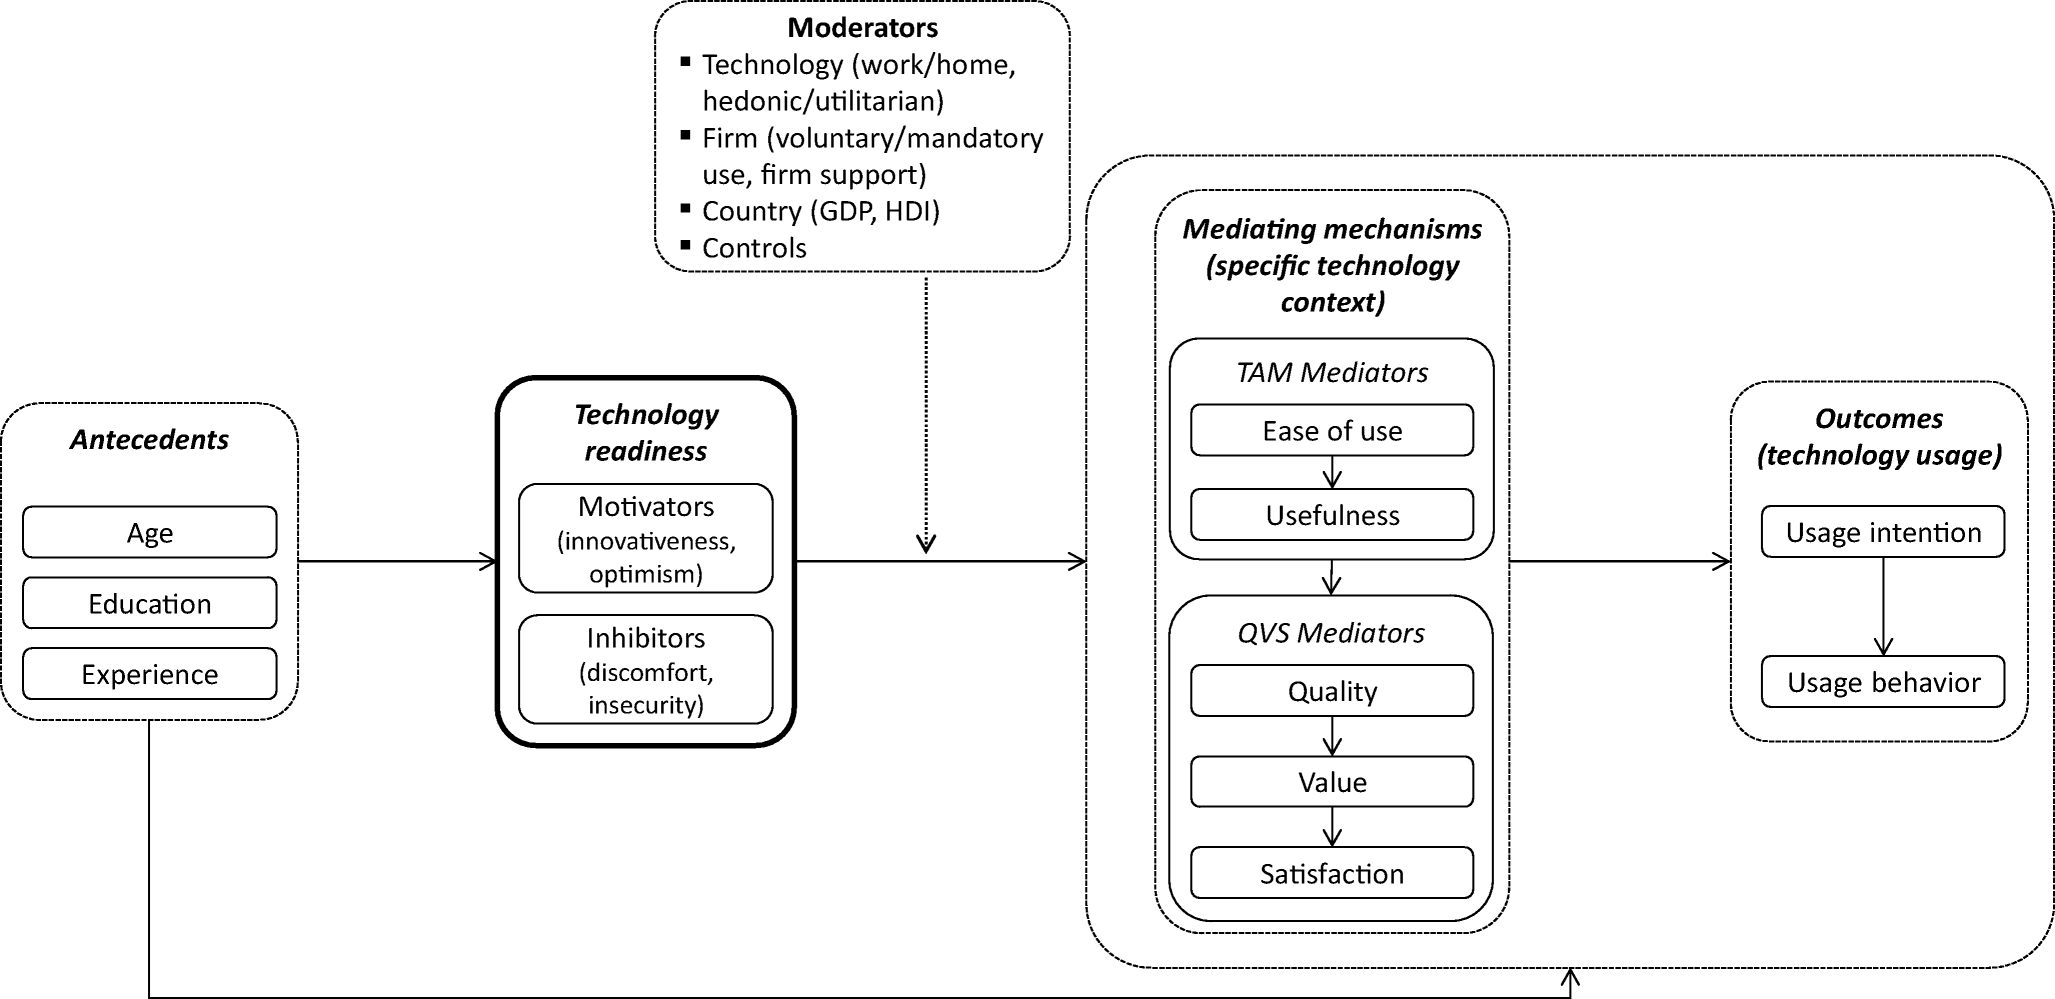 Technology readiness: a meta-analysis of conceptualizations